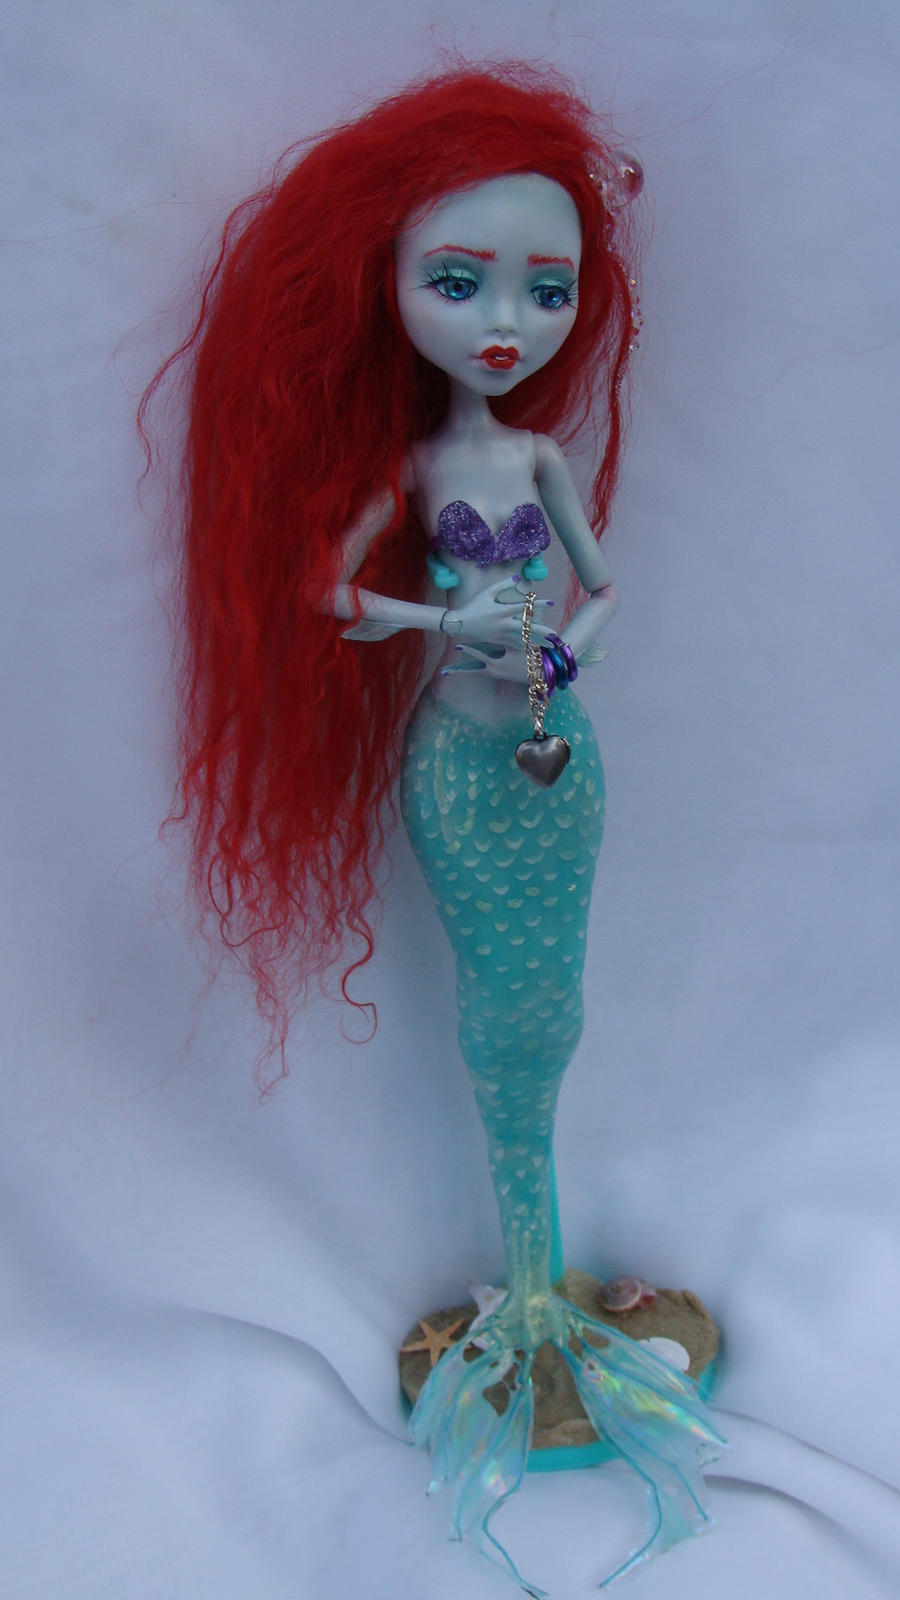 Beautiful lagoona doll monster high gets drenched in cum 19 times - 5 10